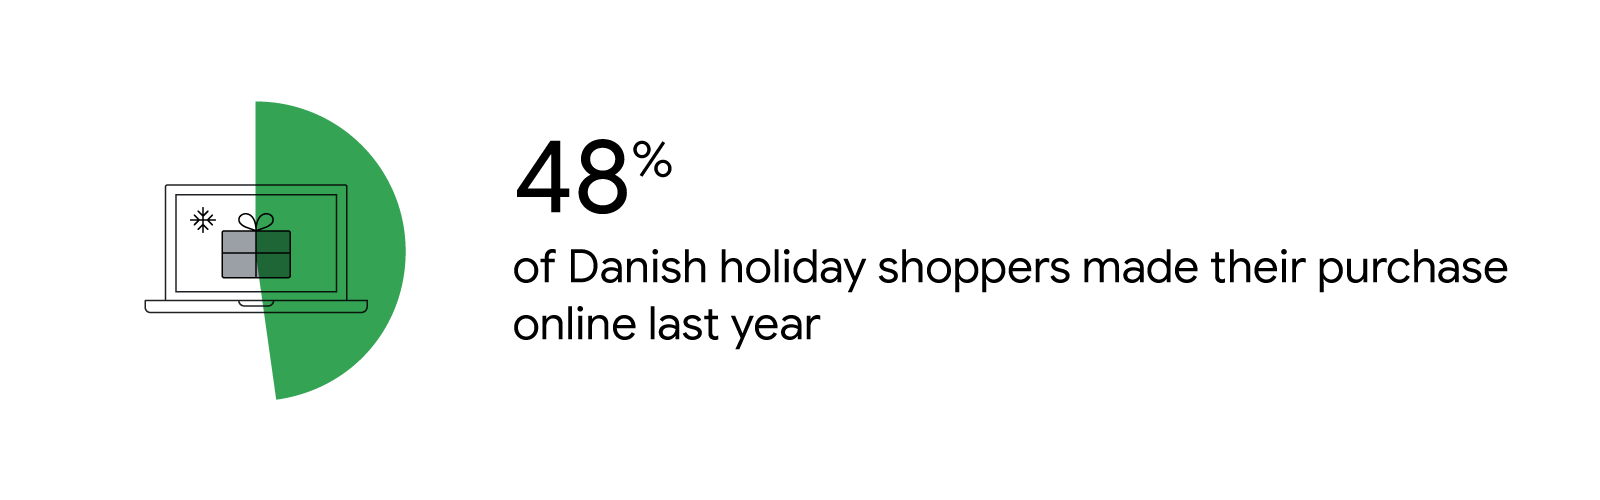 How the pandemic may affect holiday shopping